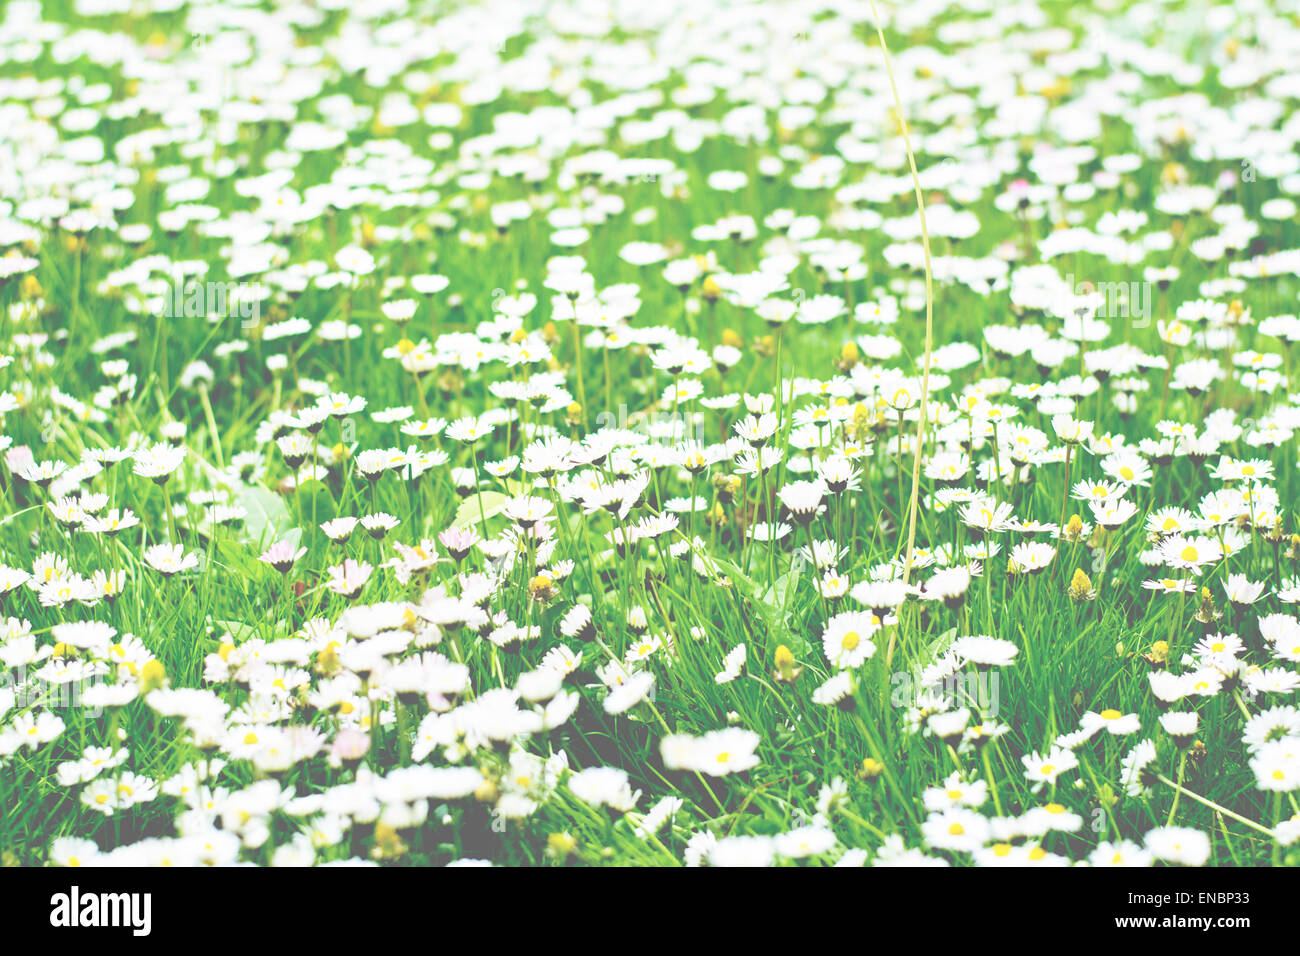 Lots of tiny white flowers blooming in the grass stock photo lots of tiny white flowers blooming in the grass mightylinksfo